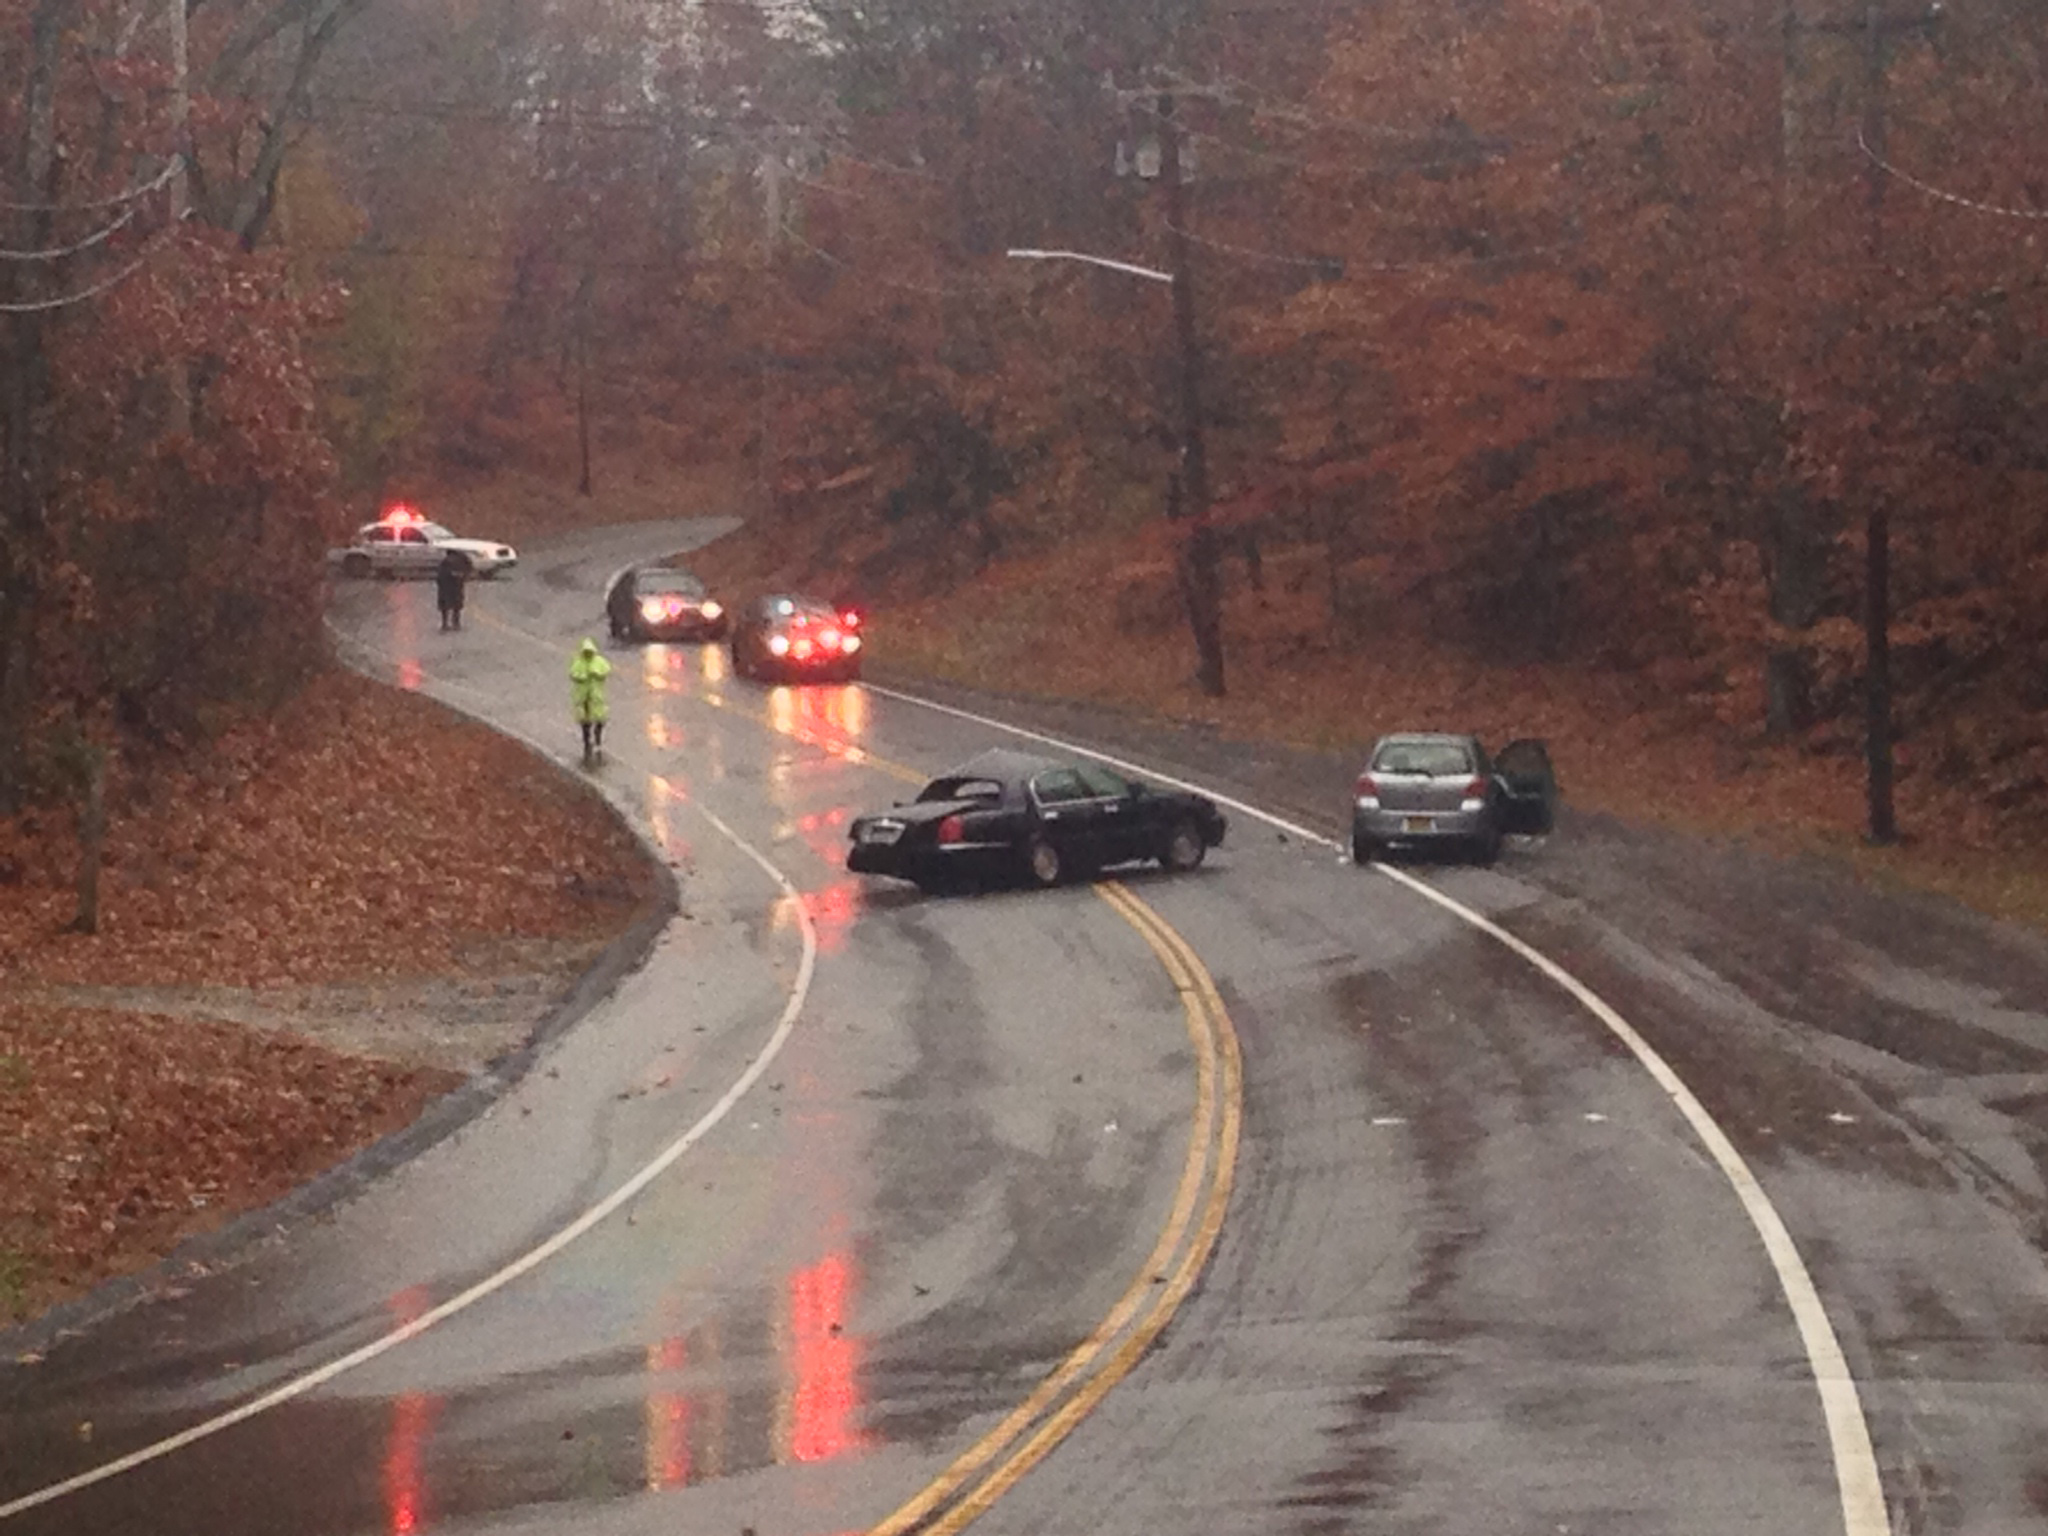 Sound Avenue is expected to be closed near the scene of the crash for several more hours. (Credit: Joe Werkmeister)